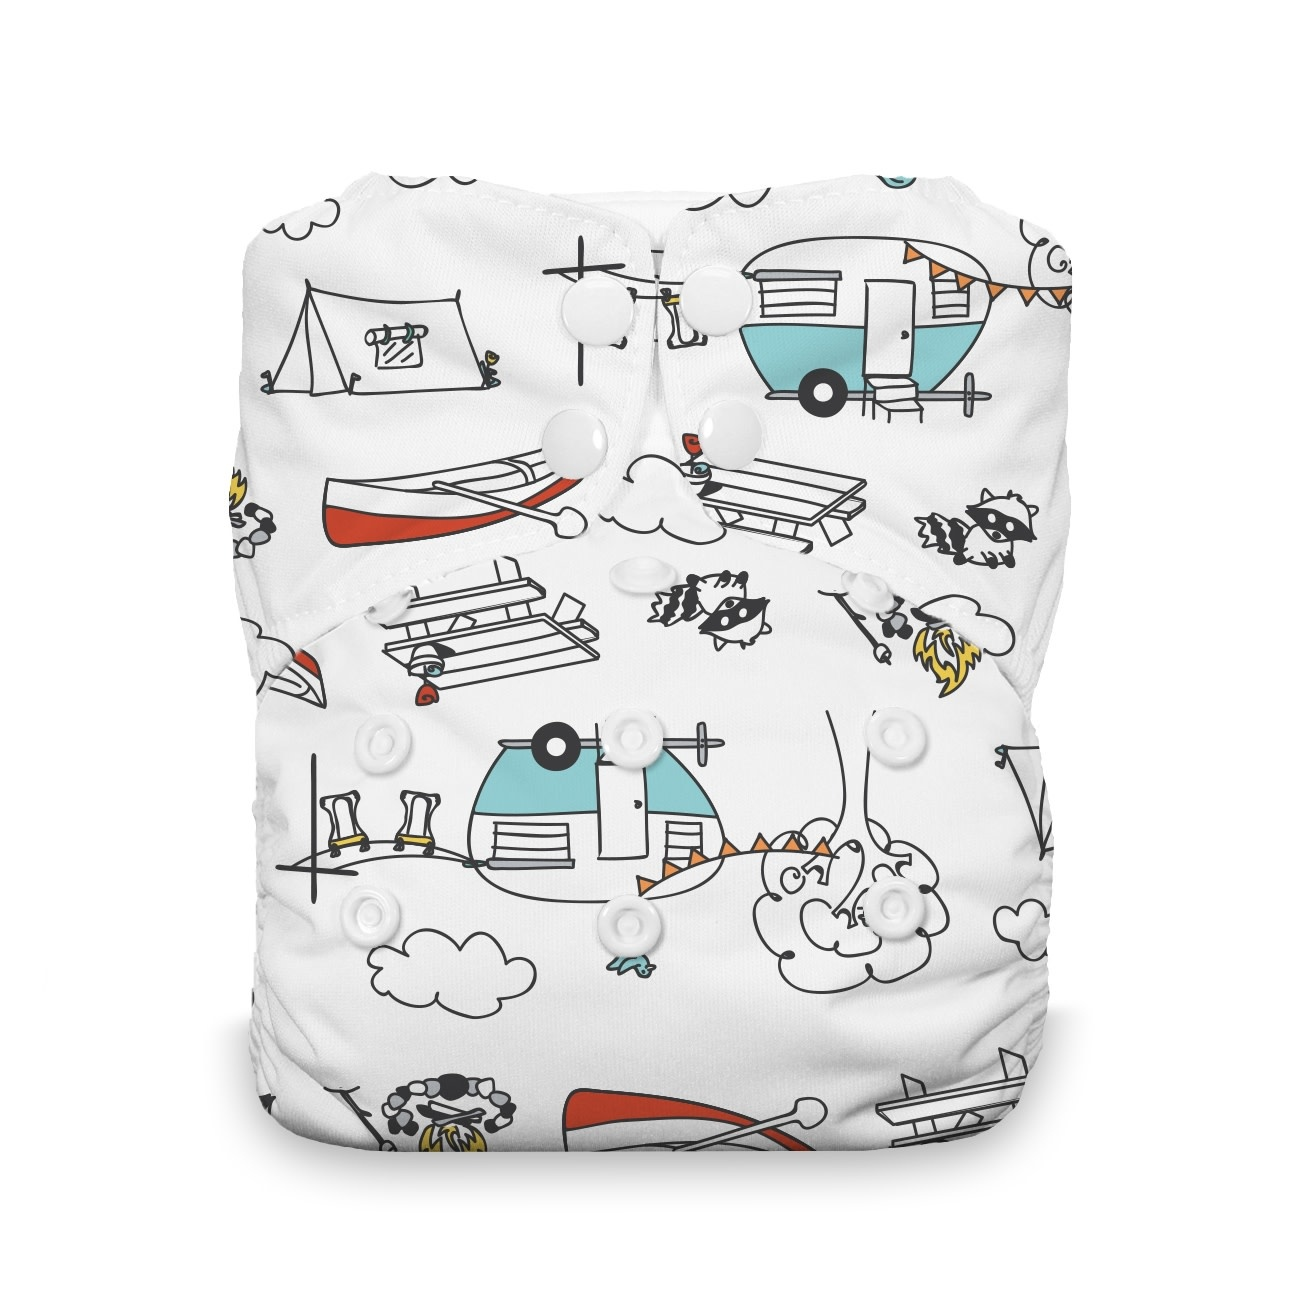 Thirsties Thirsties - Natural One Size AIO Snap - Happy Camper